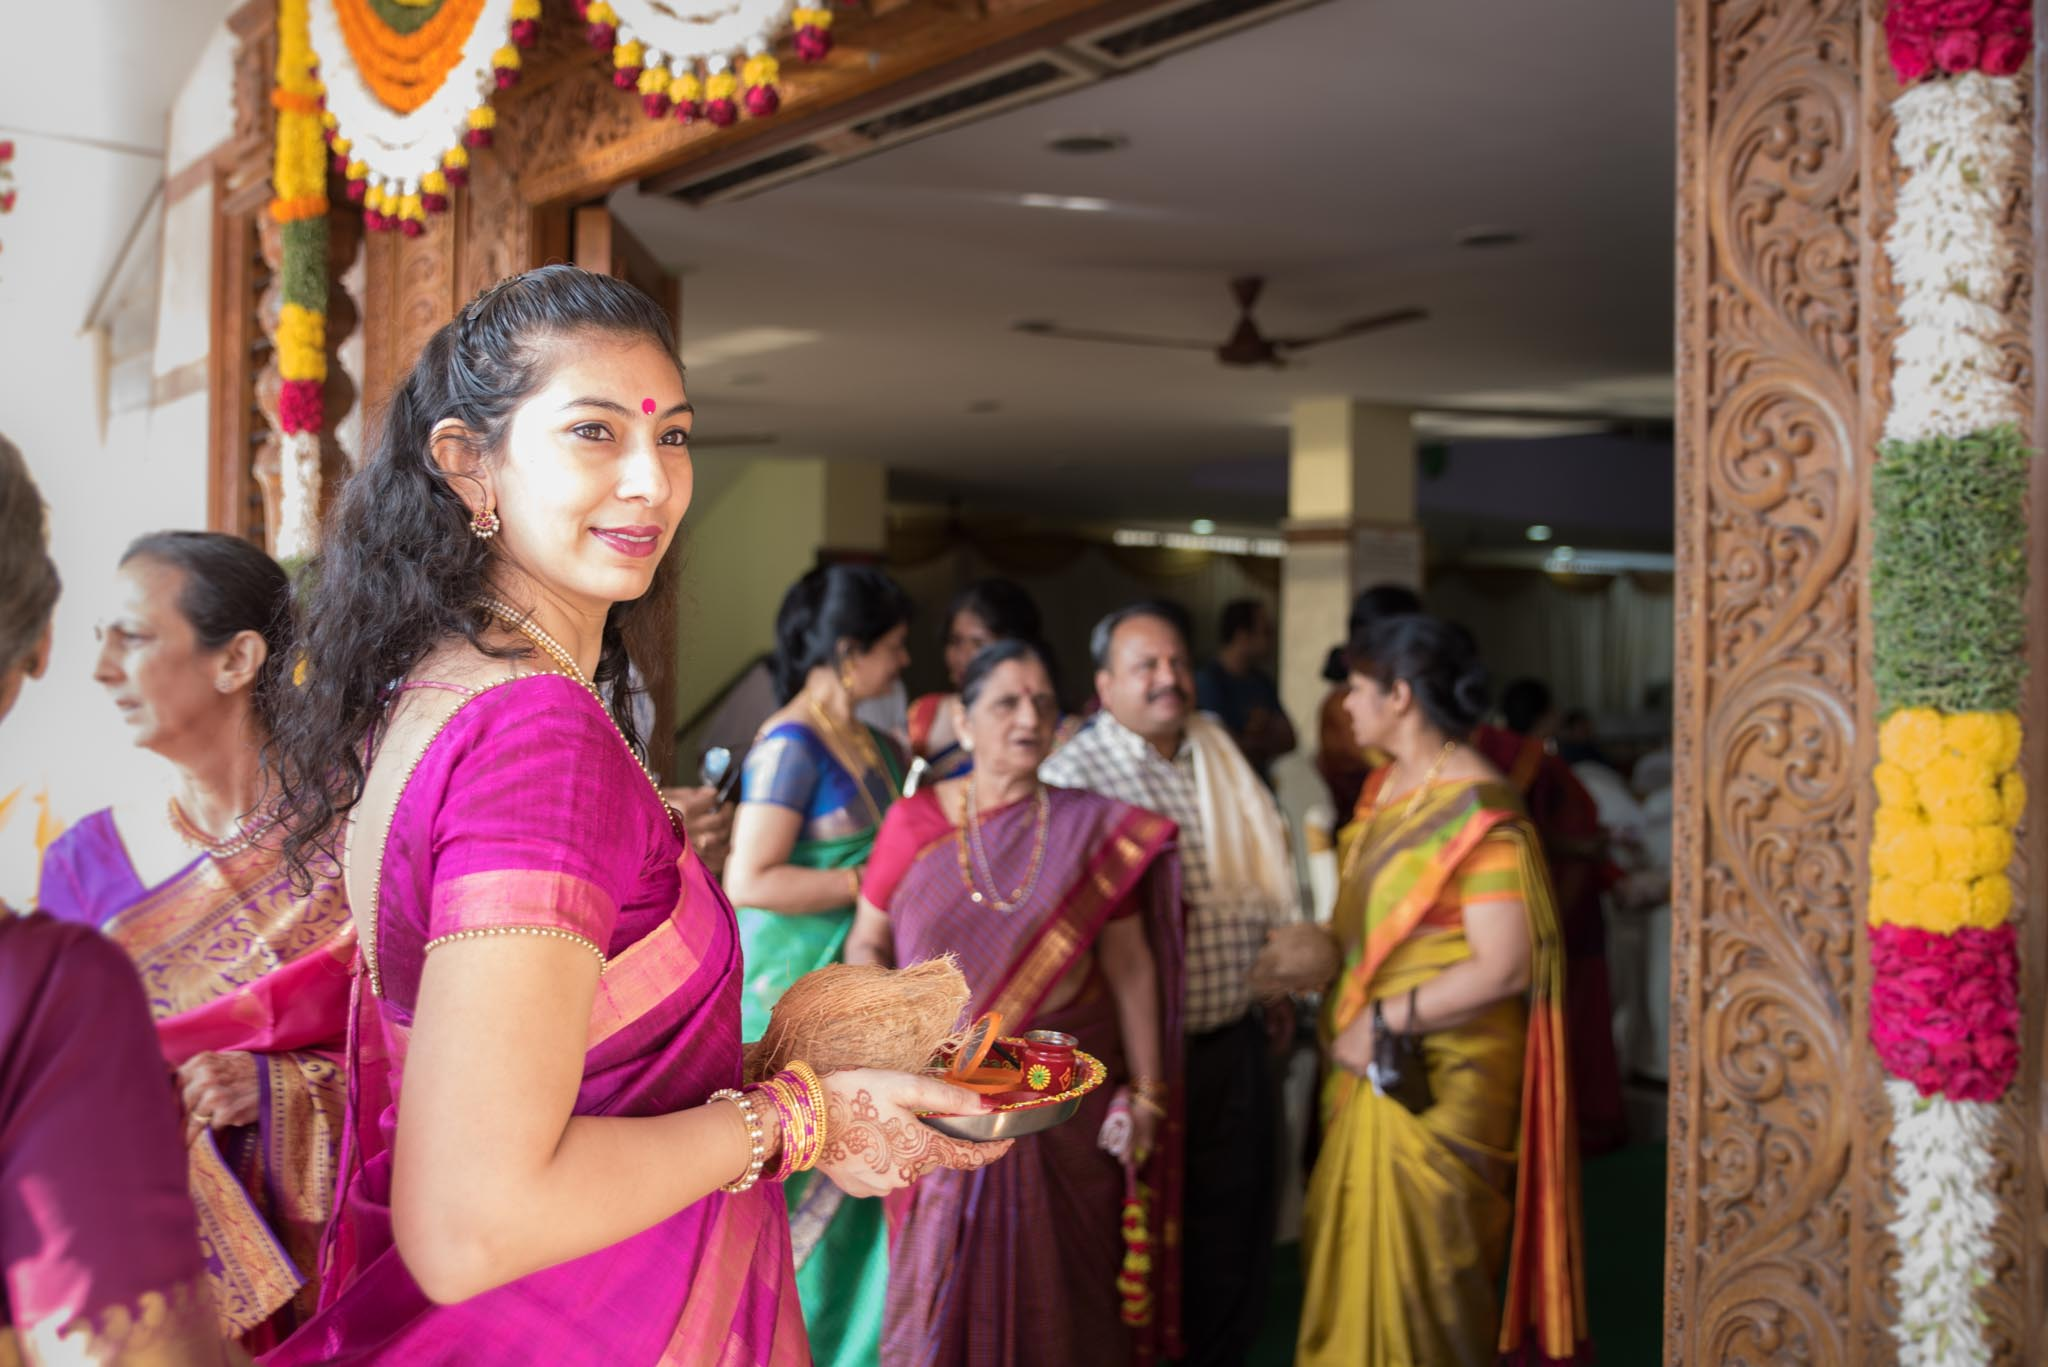 WhatKnot-Candid-Wedding-Photography-Mumbai-Bangalore-127